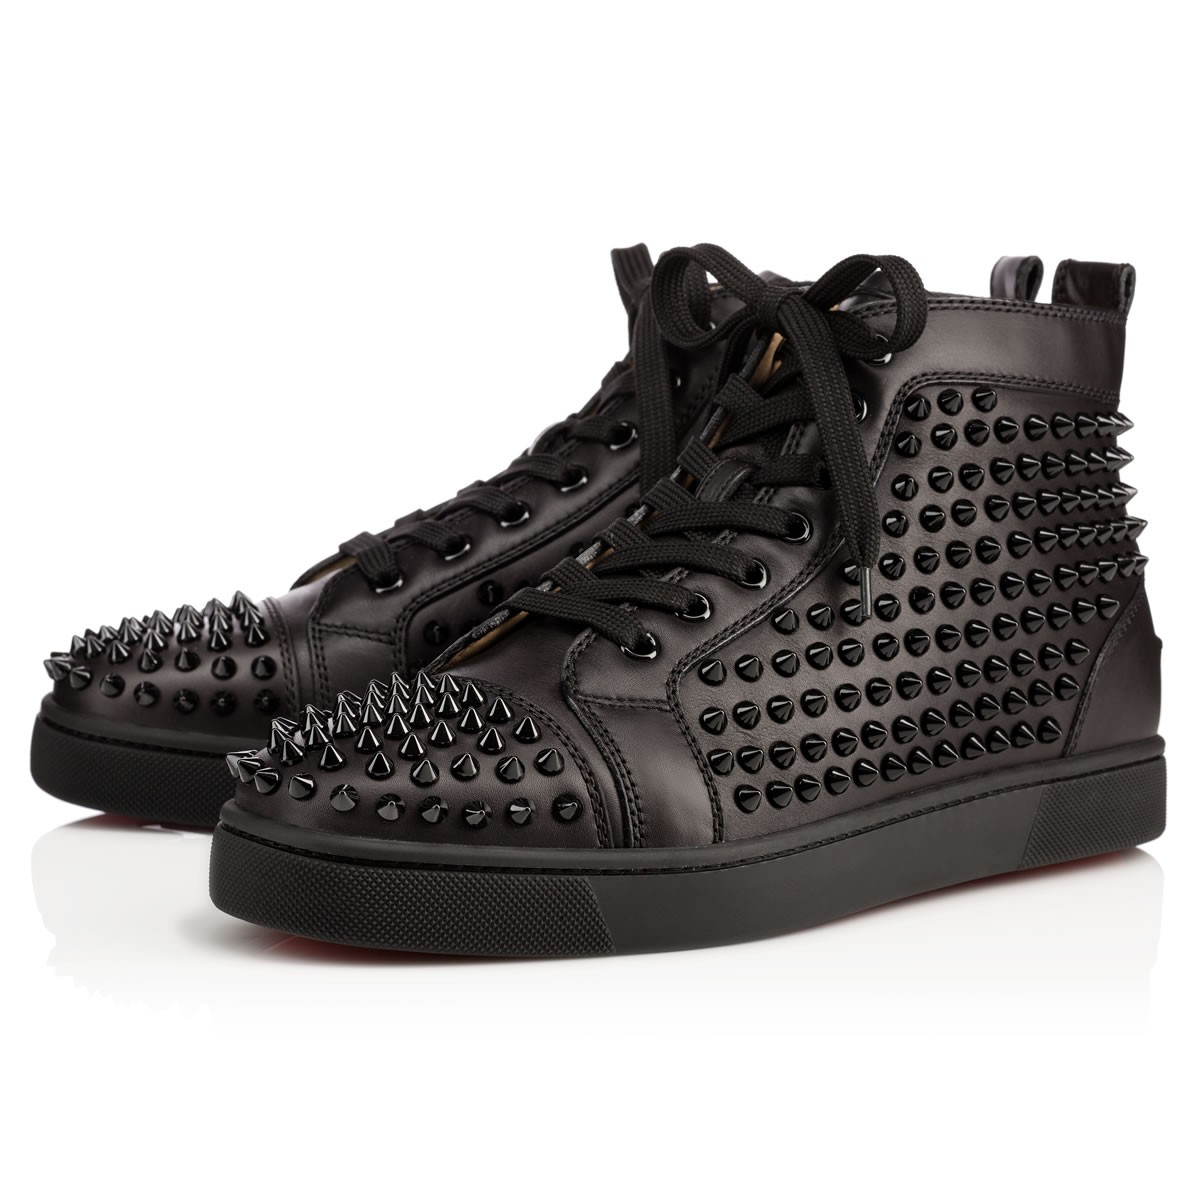 86793c343f0 Louis Spikes Men s Flat Black Black Bk Leather - Men Shoes - Christian  Louboutin